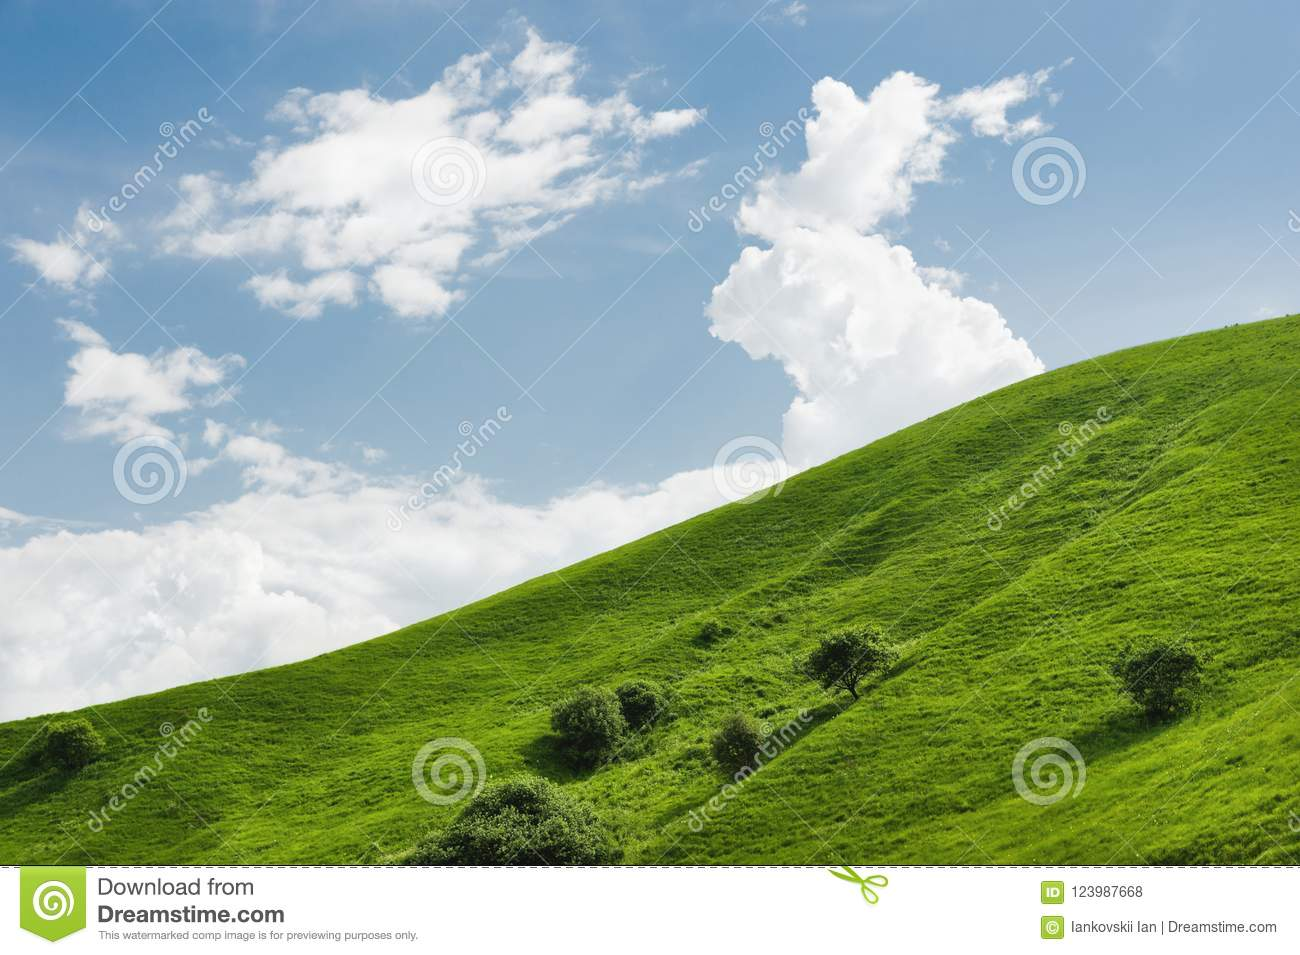 A gentle slope of a green hill with rare trees and lush grass against a blue sky with clouds. The Sonoma Valley